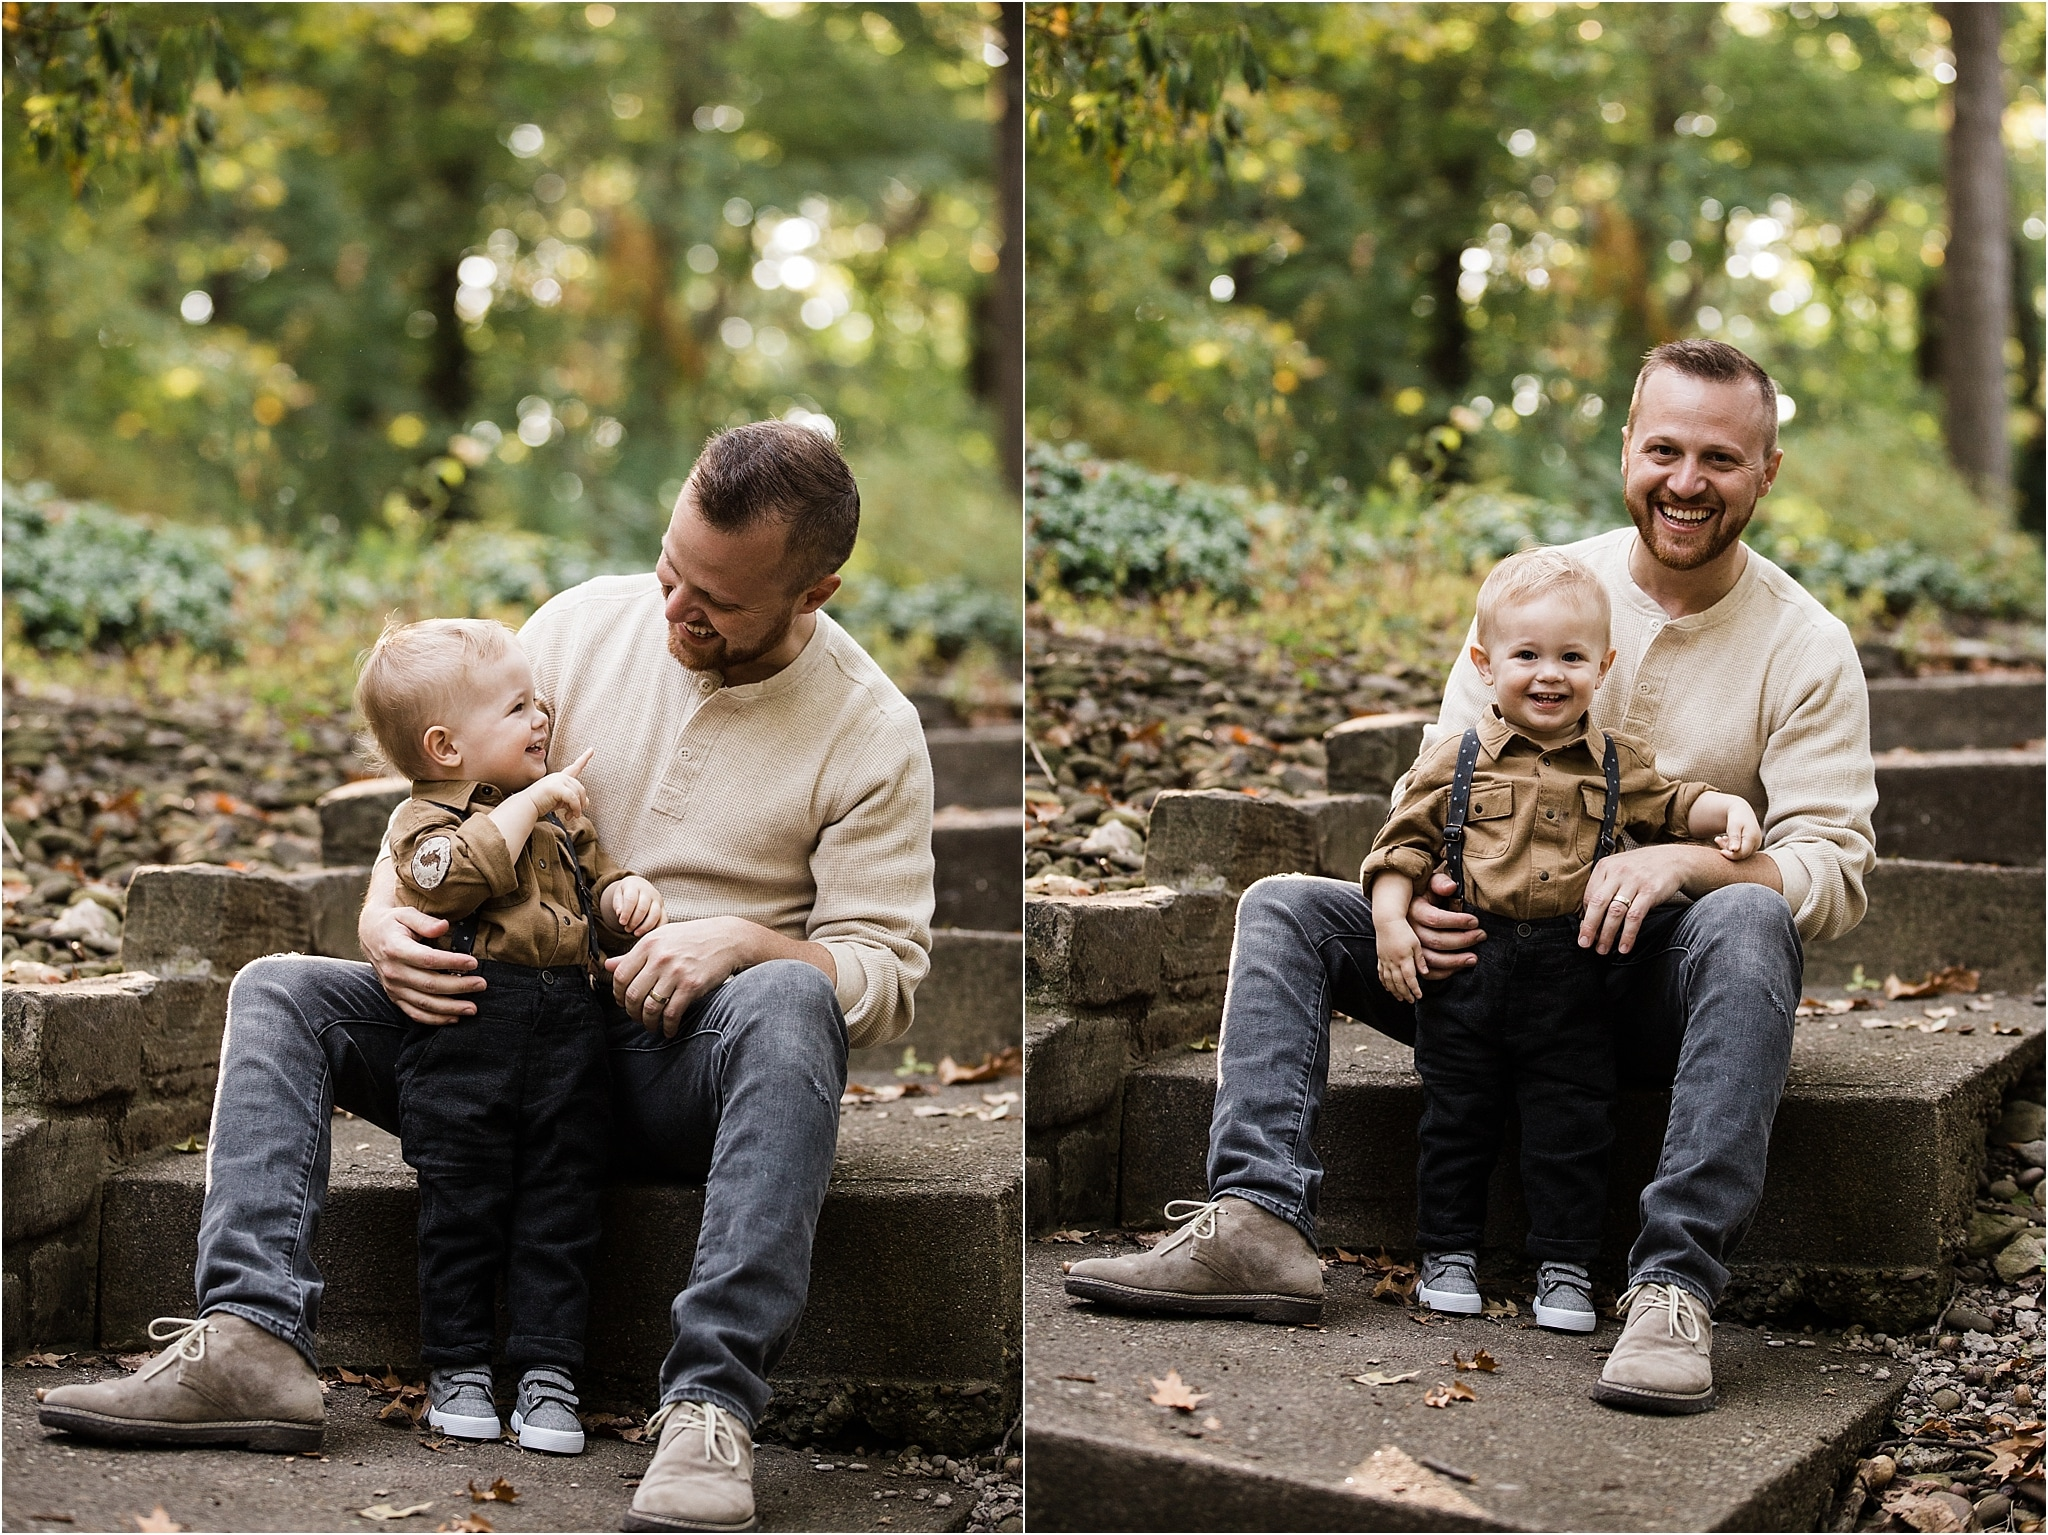 photos of father and son on steps of home